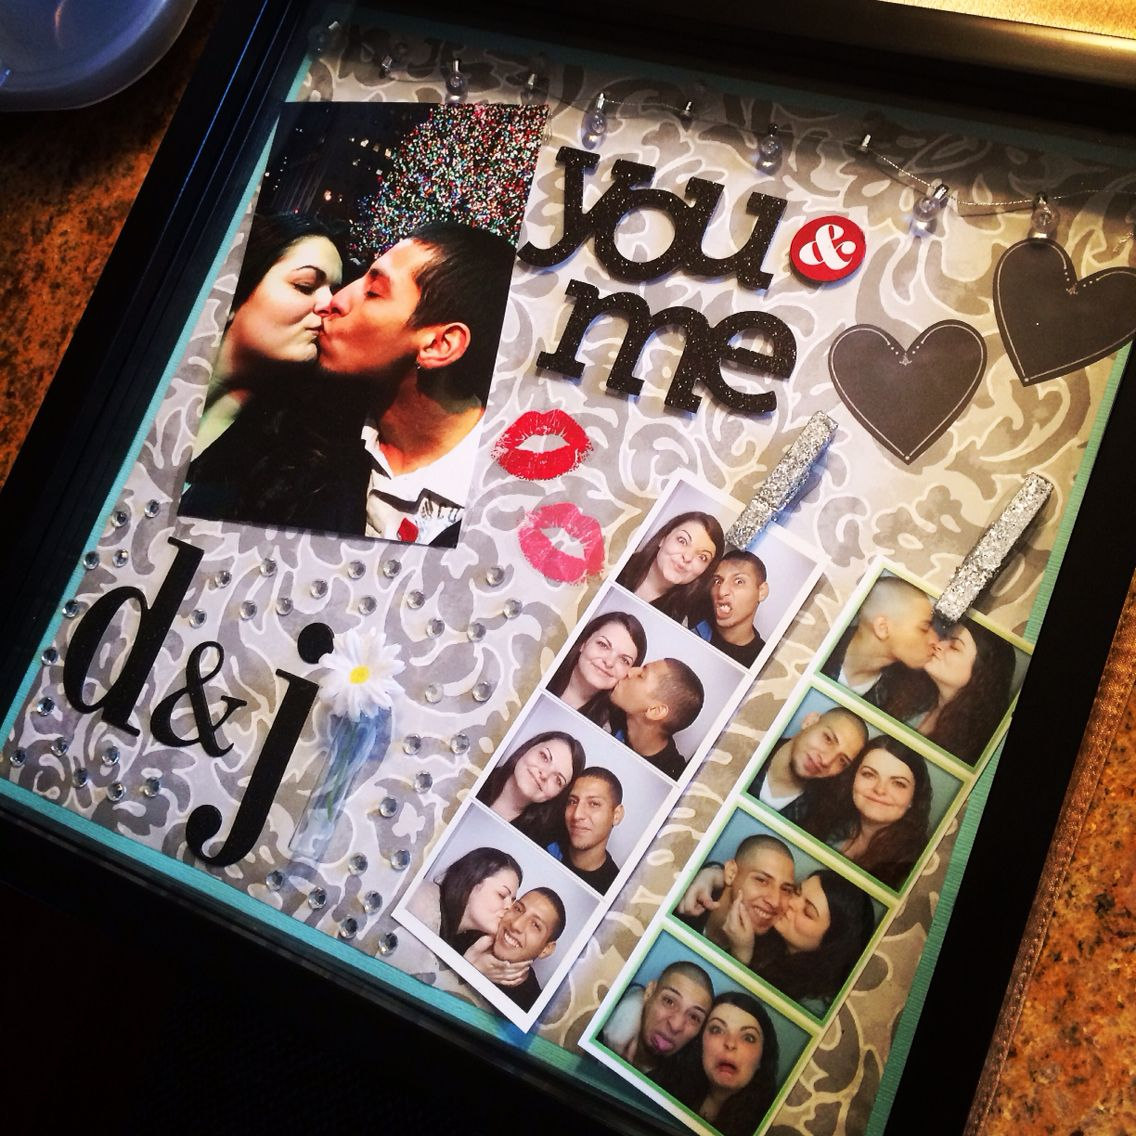 New Diy Handmade Creative Albums Romantic Souvenir: I Decided I Wanted To Make A Shadow Box Of Me And My